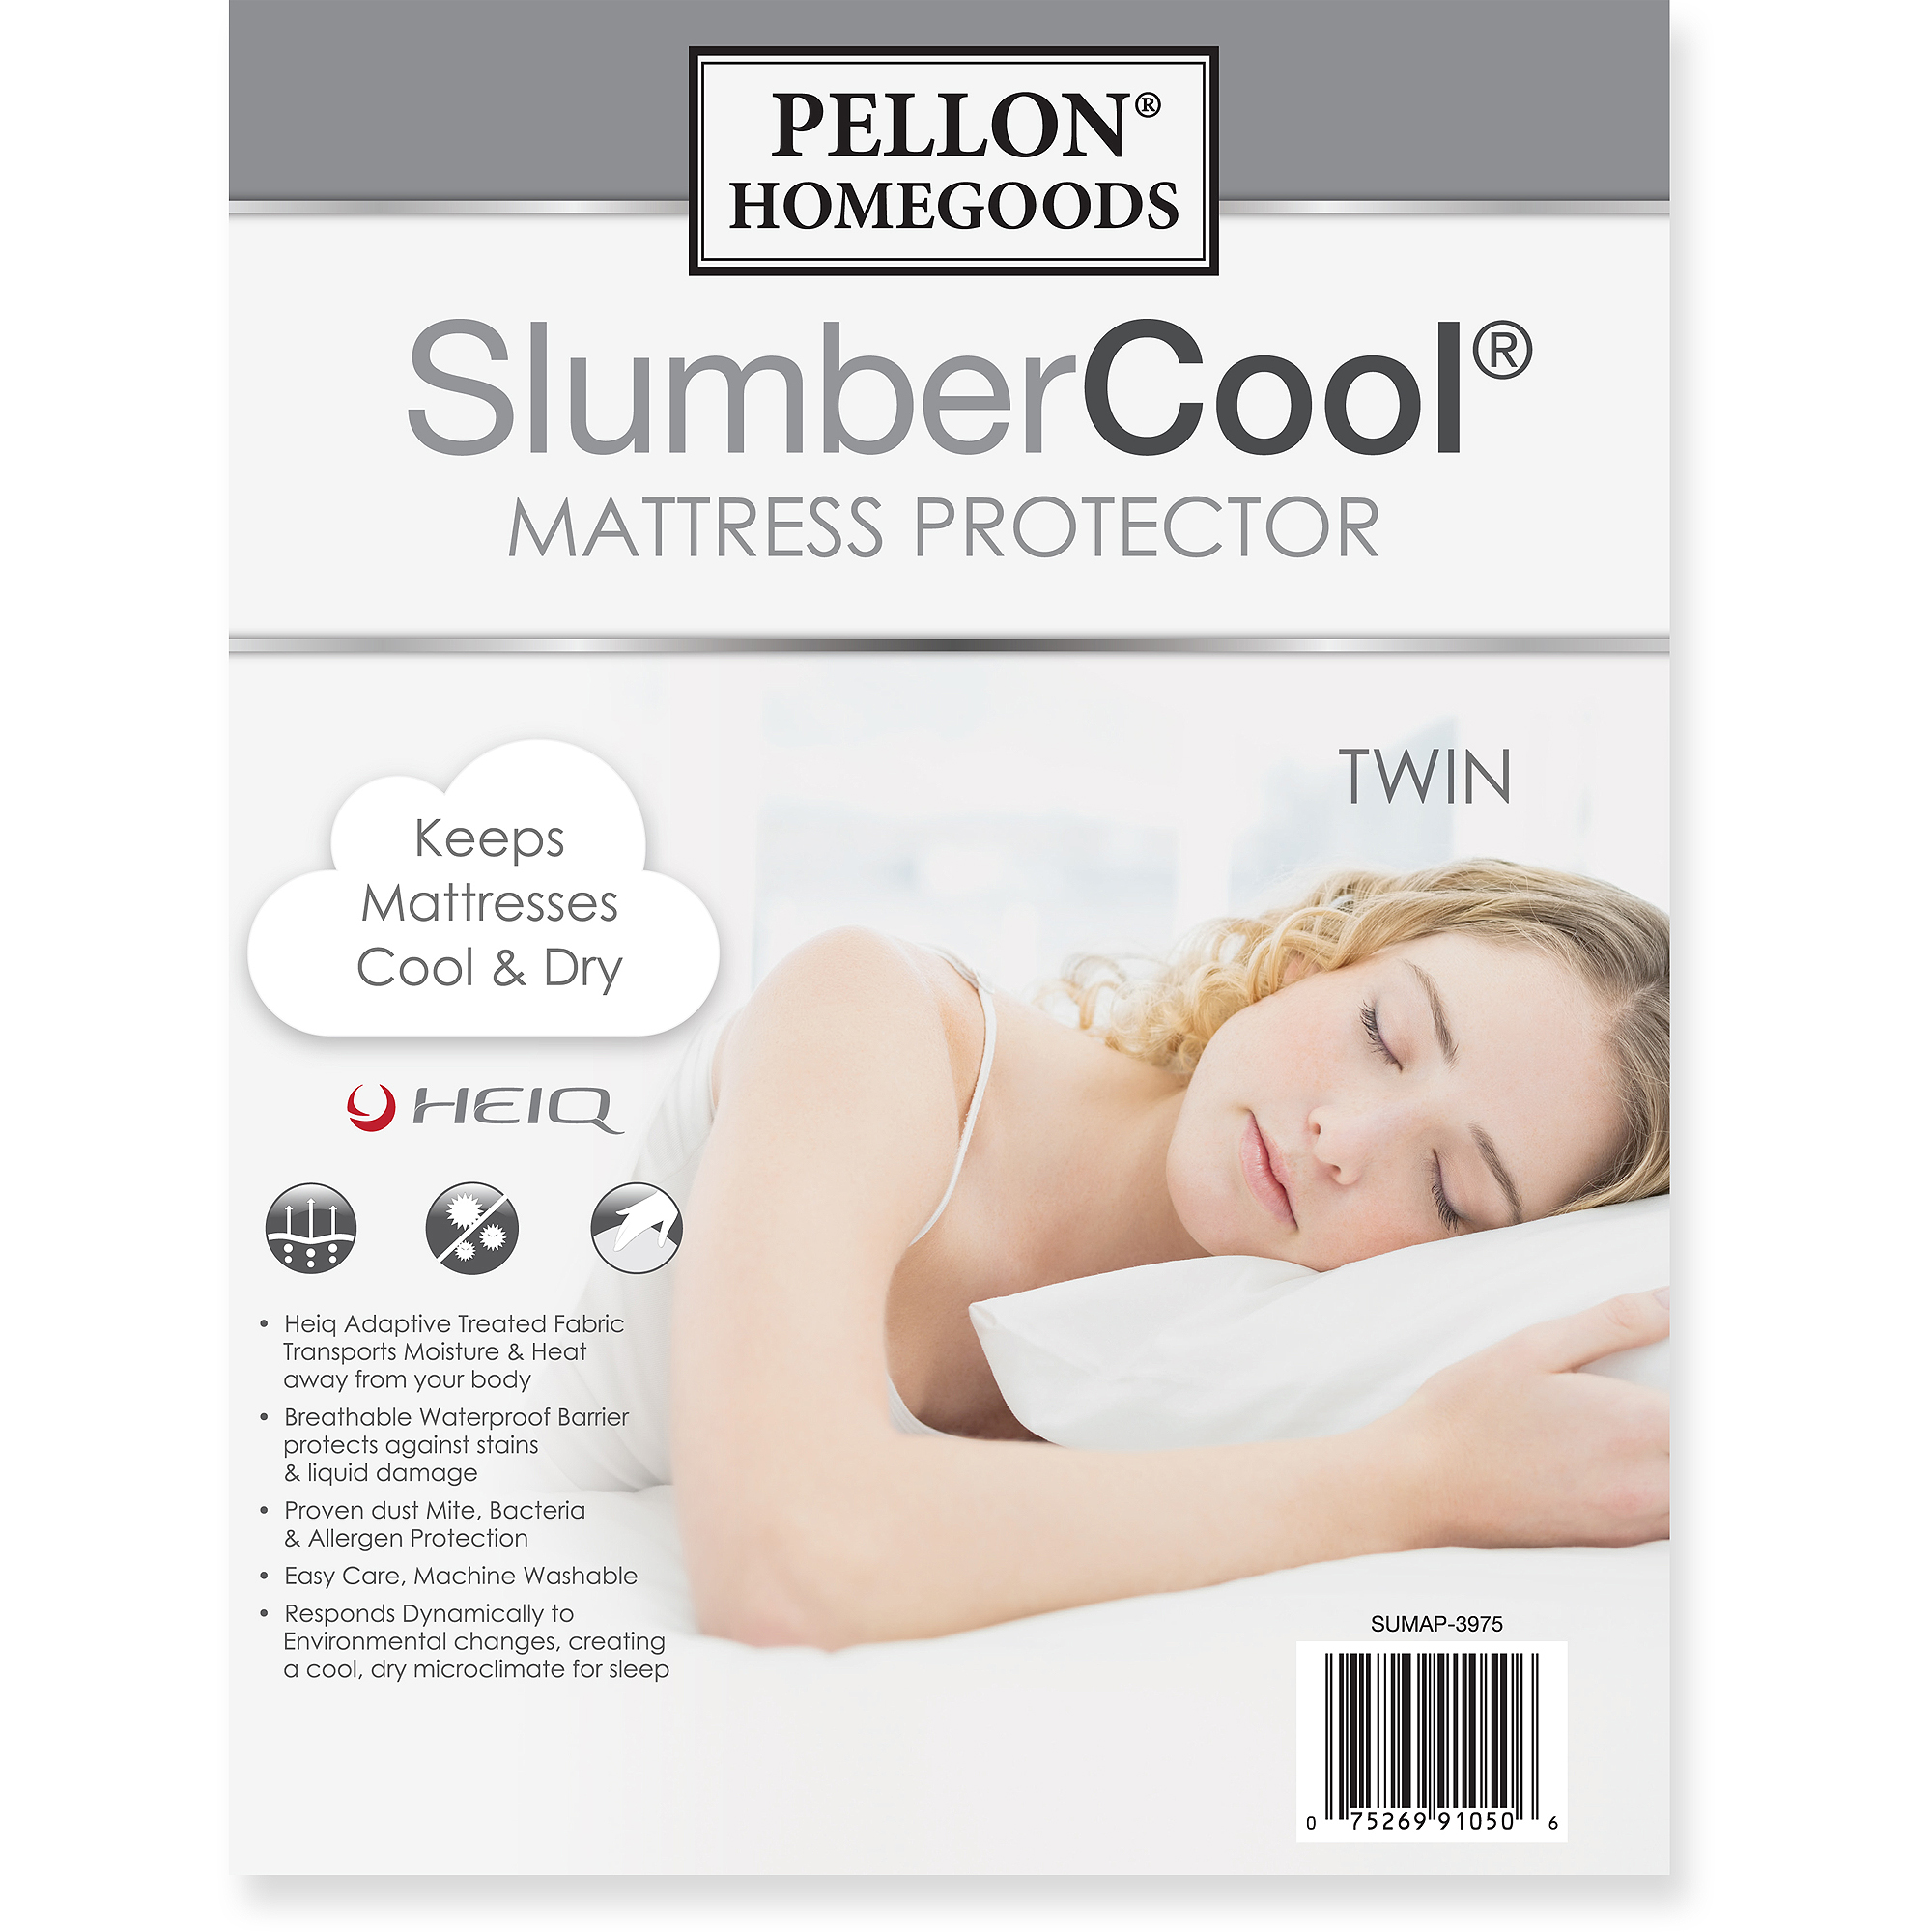 Pellon Slumber Cool Mattress Protector